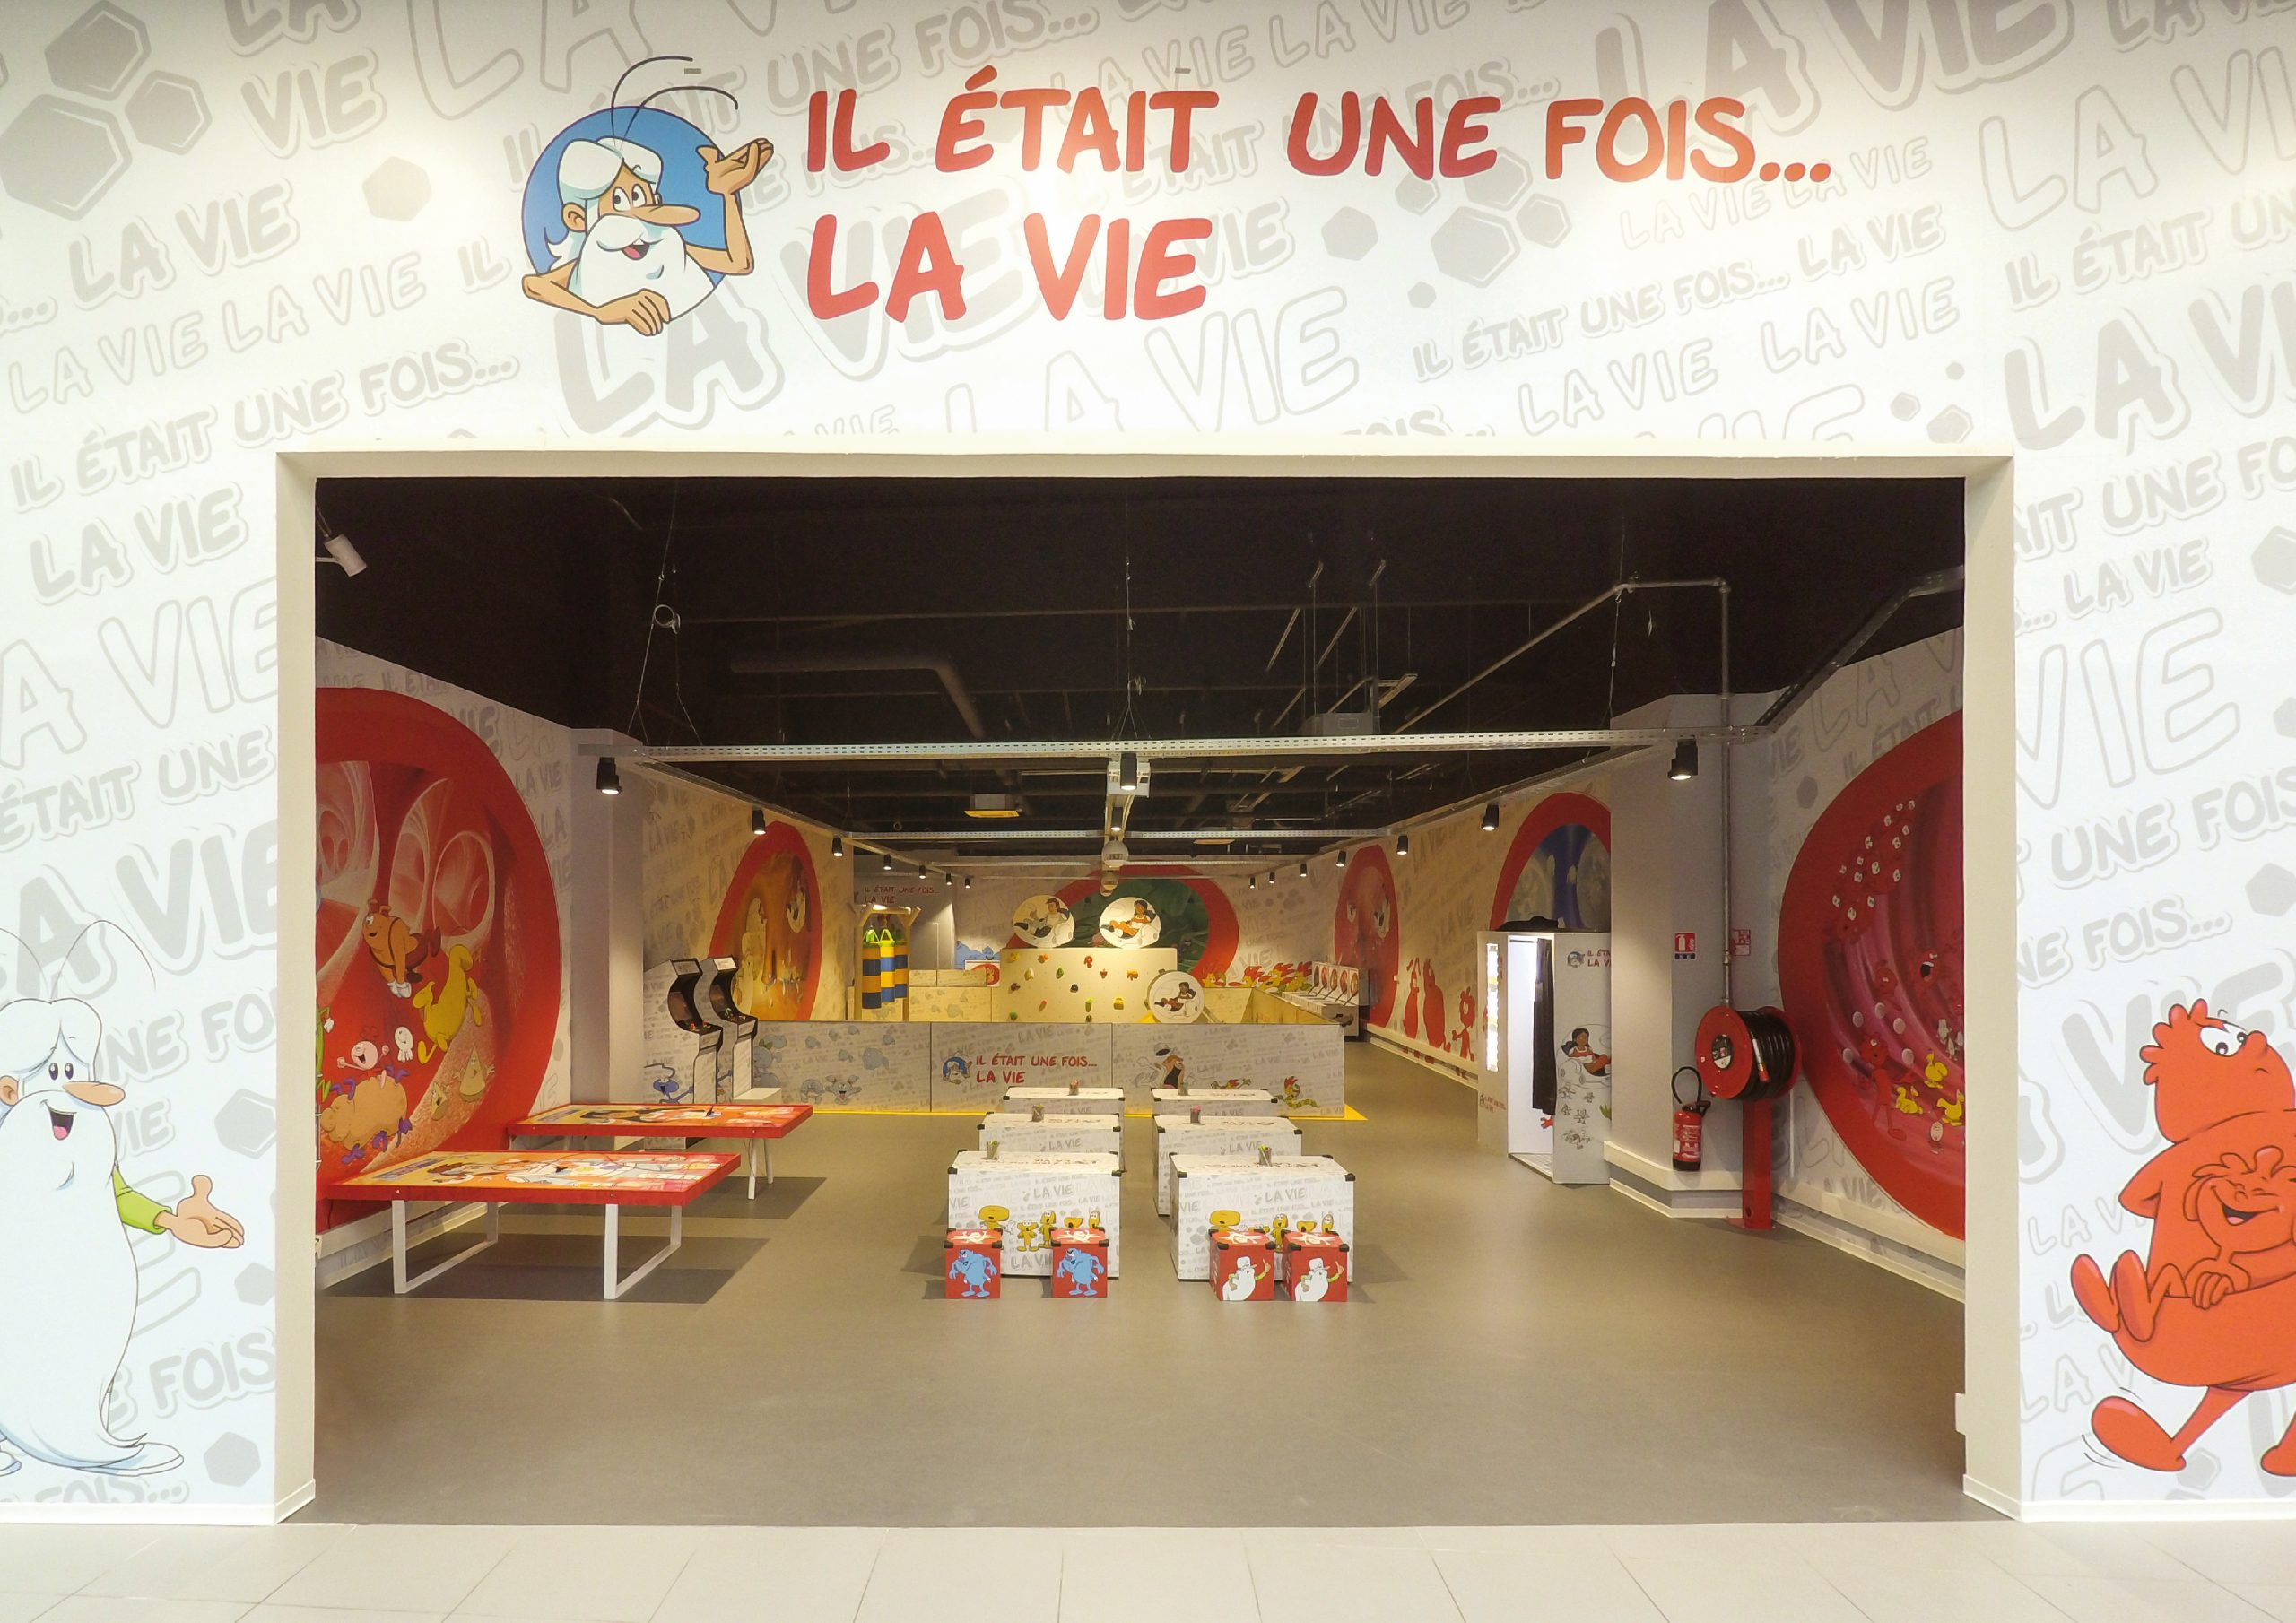 ONCE UPON A TIME… LIFE EXHIBITION – HELLO MAESTRO